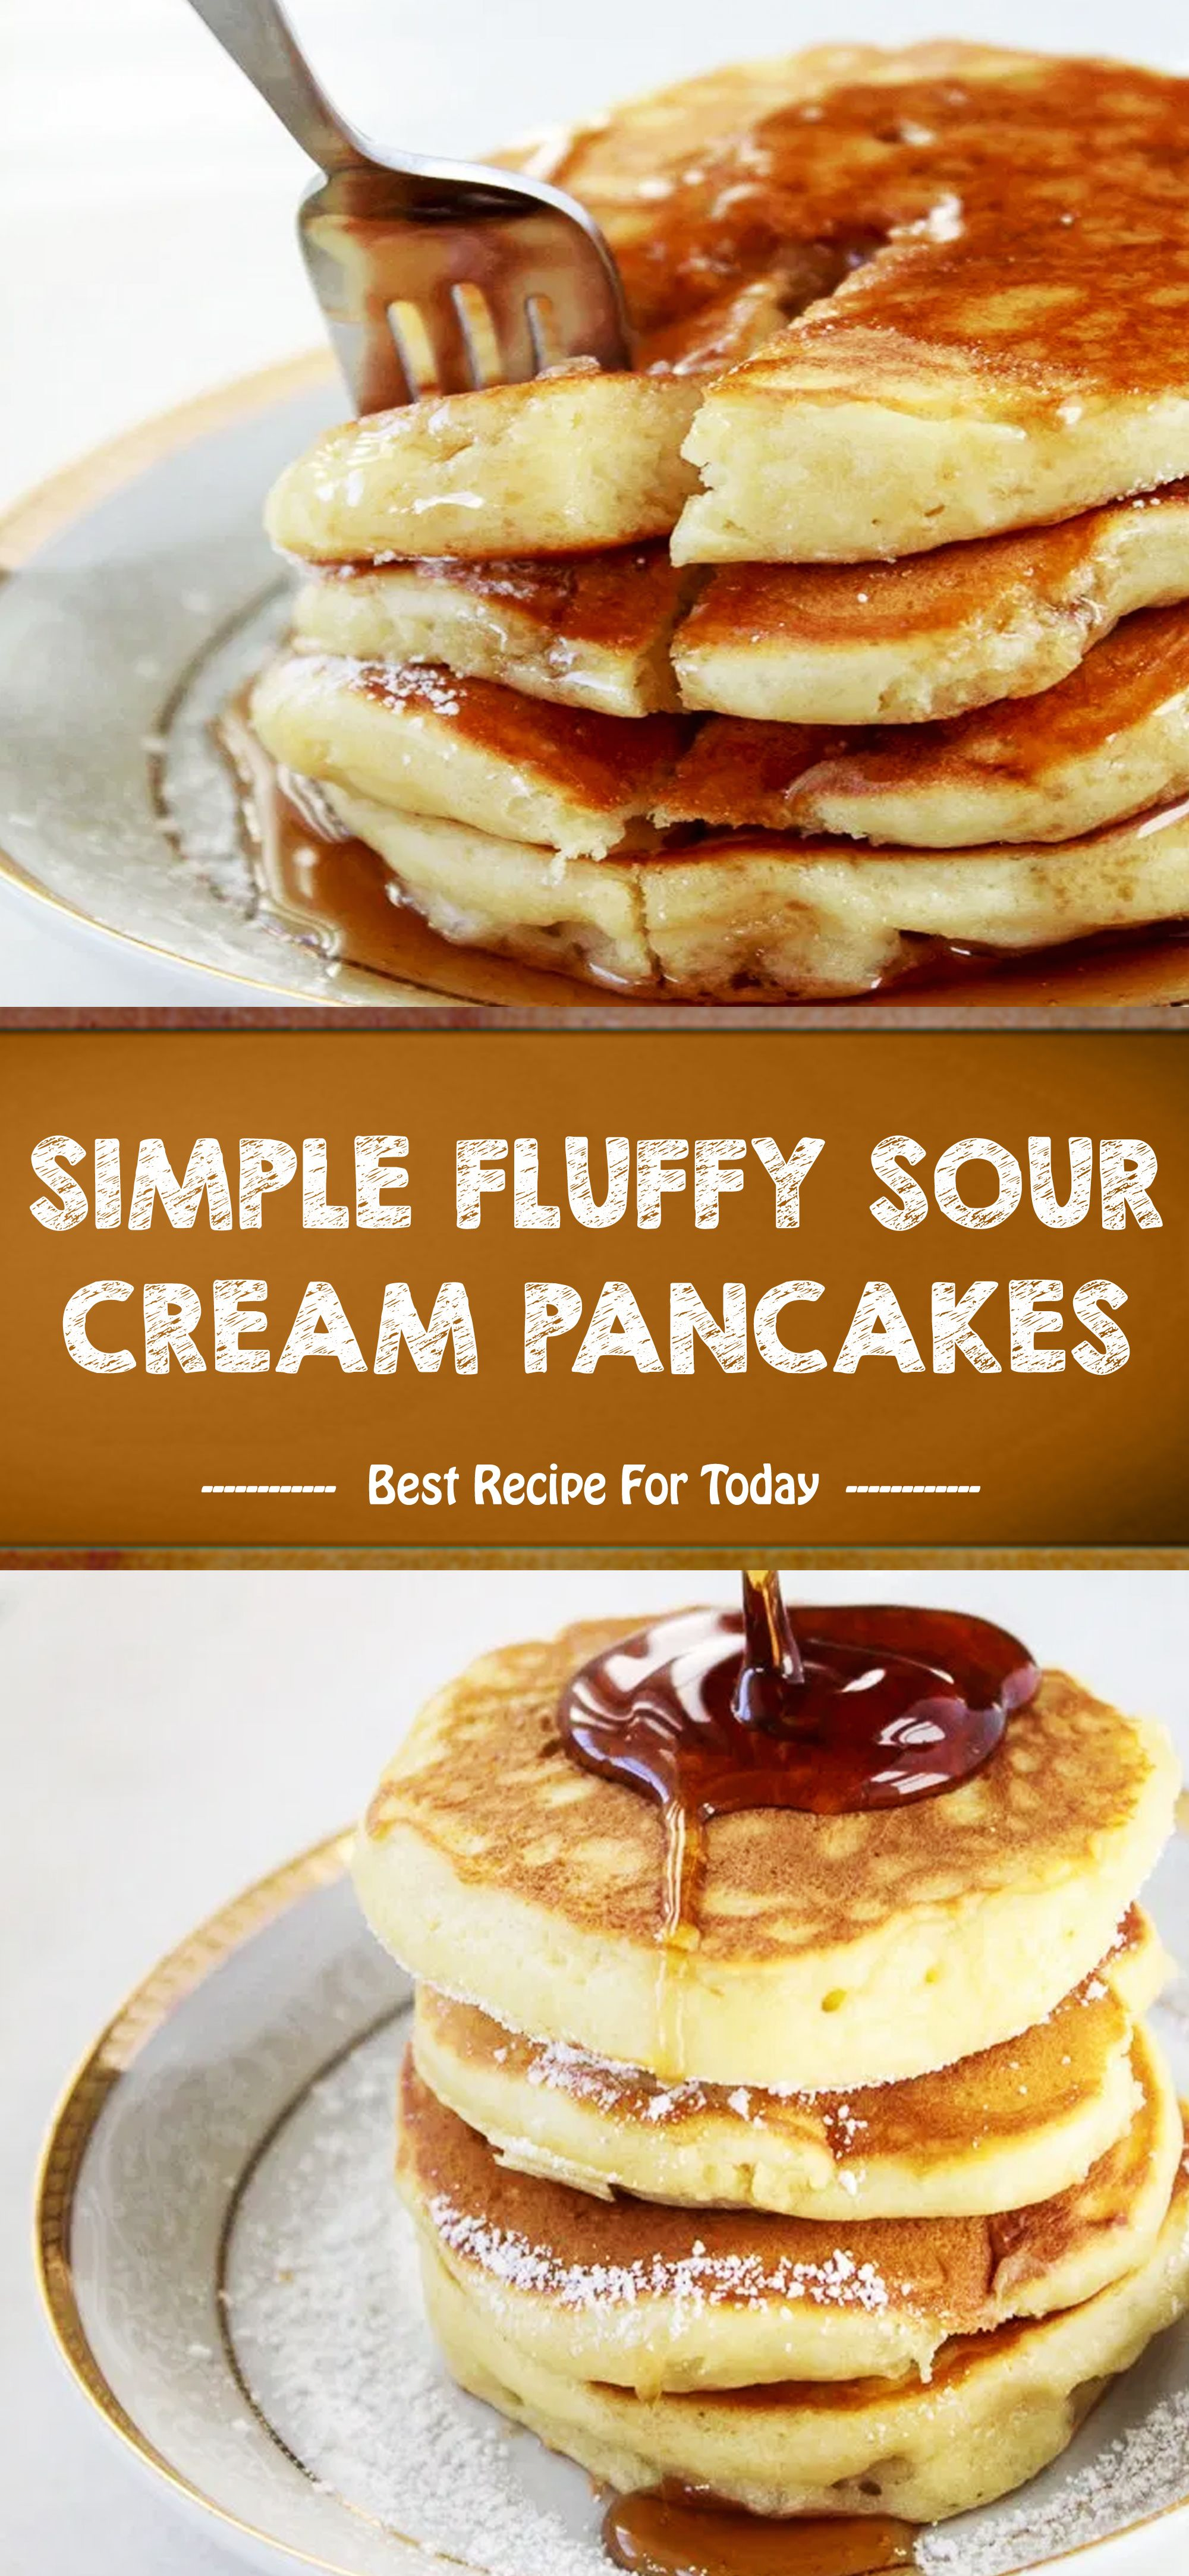 Simple Fluffy Sour Cream Pancakes In 2020 Sour Cream Pancakes Best Dessert Recipes Chewy Sugar Cookie Recipe